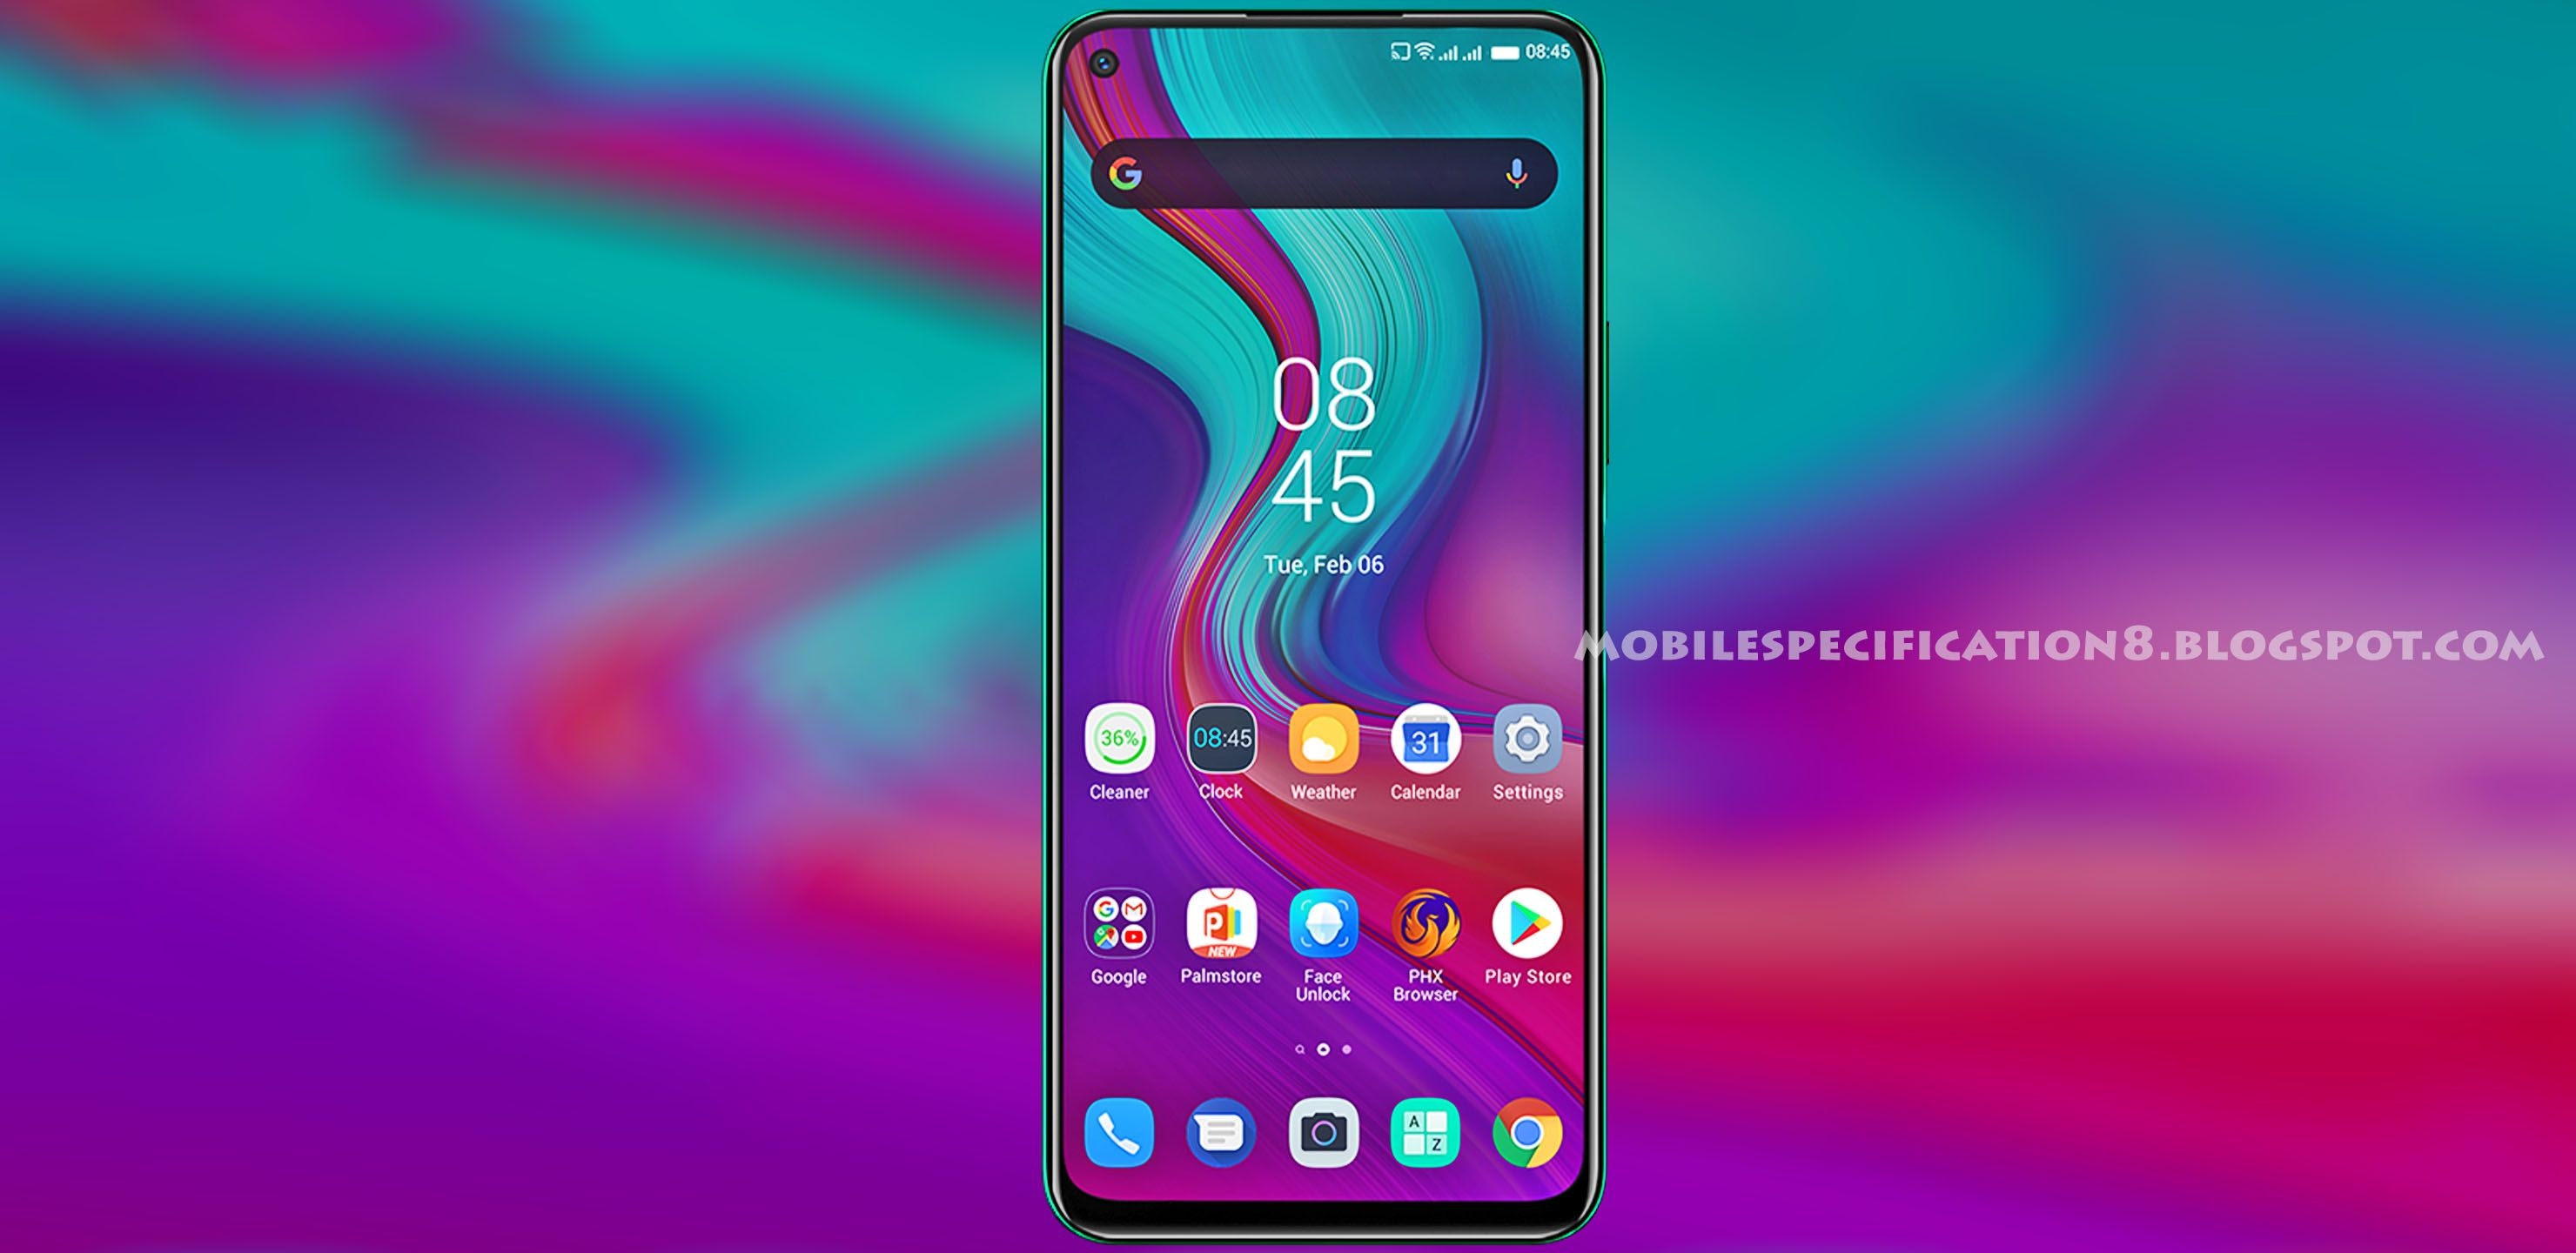 Infinix Note 7 Price in India, Launch Date